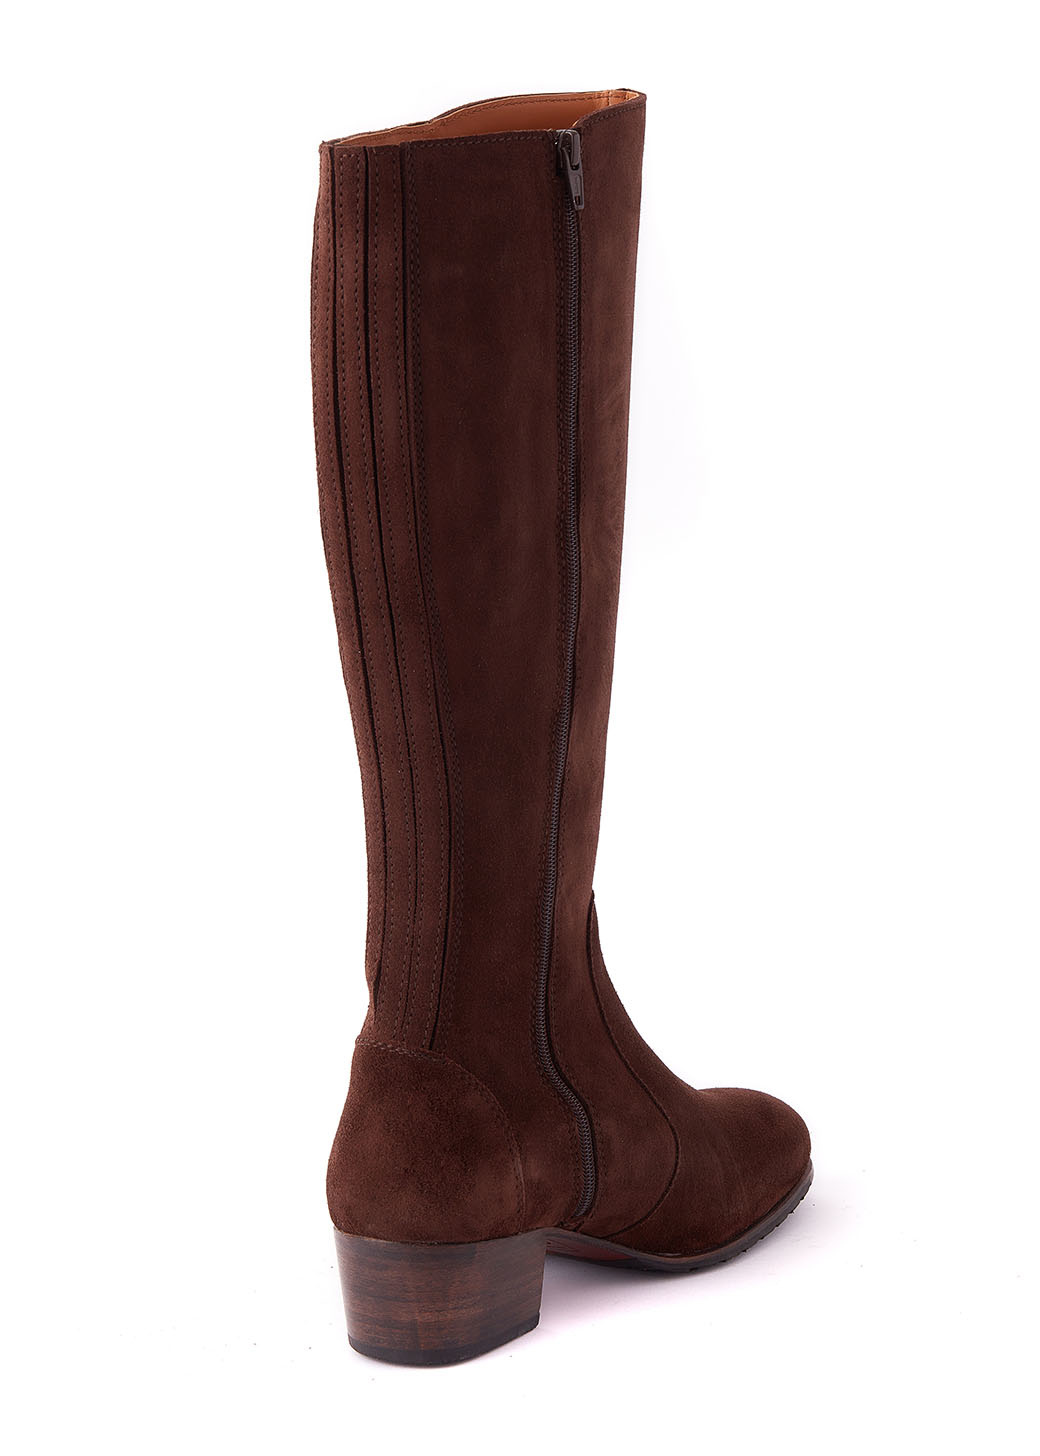 Dubarry Downpatrick Kniehoge Laars - Cigar-5